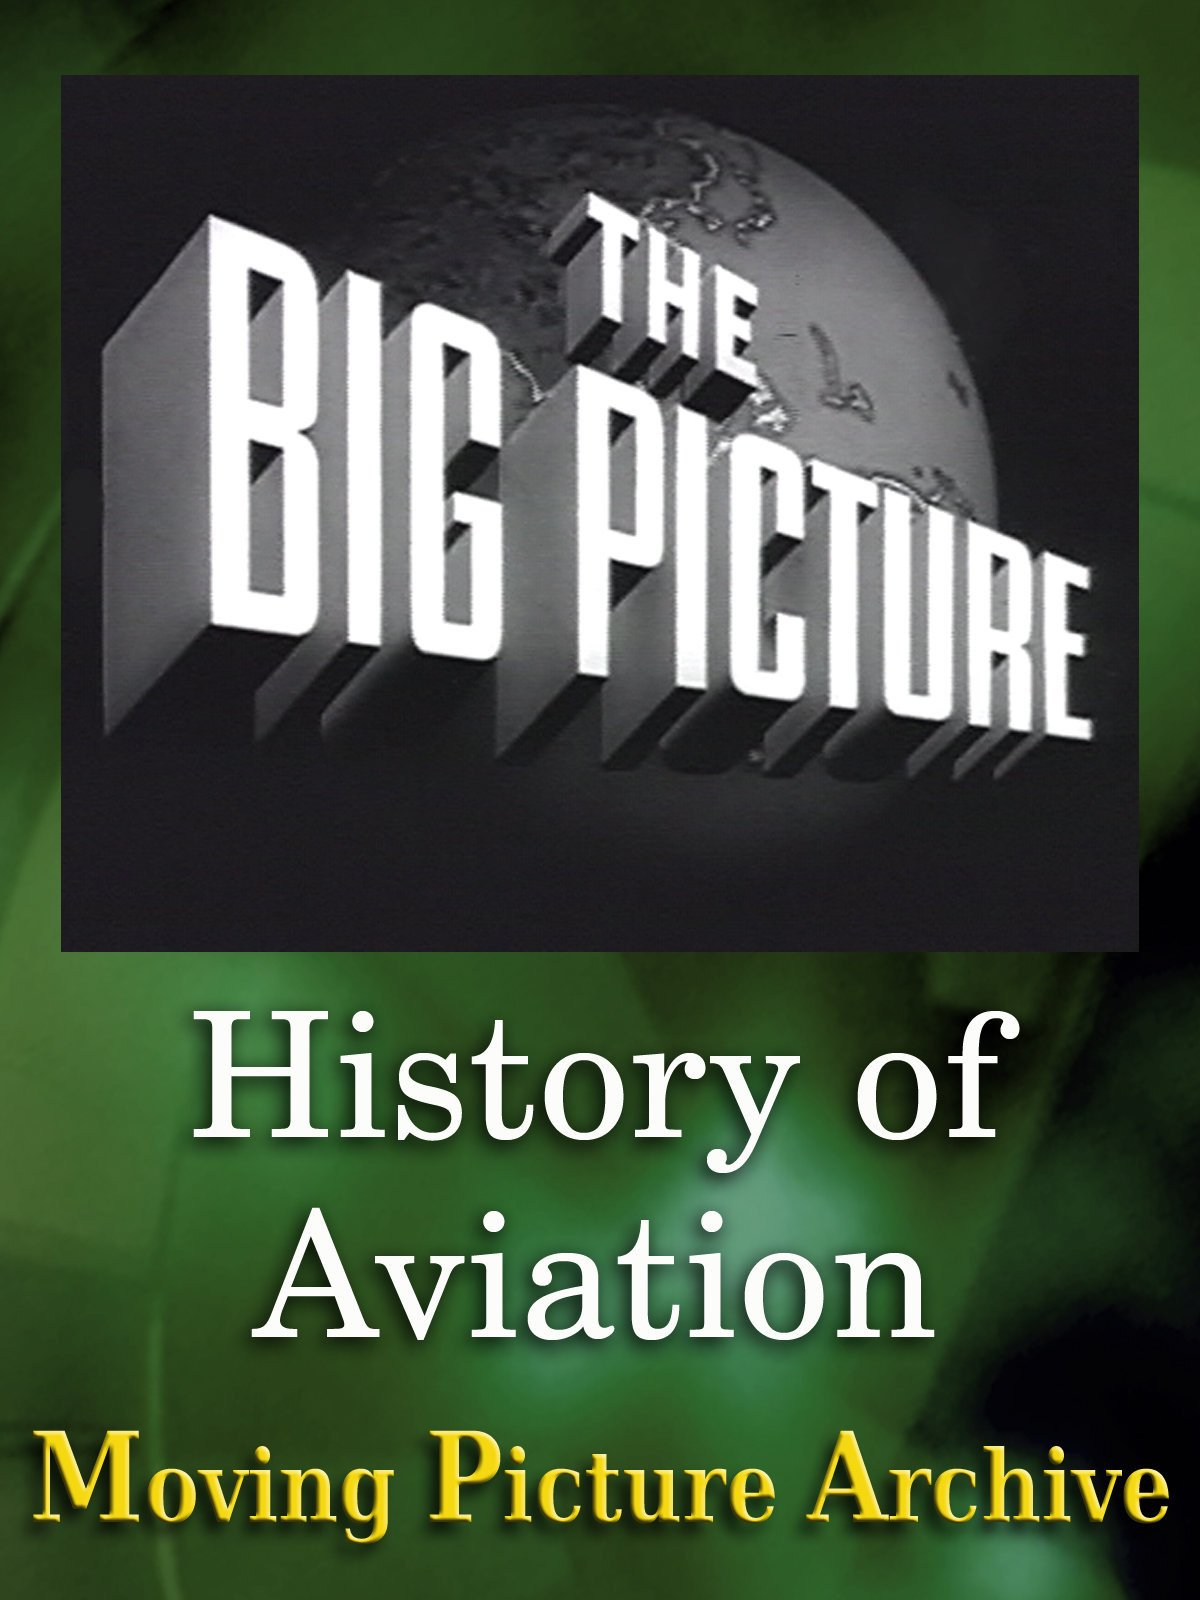 The Big Picture - History of Aviation